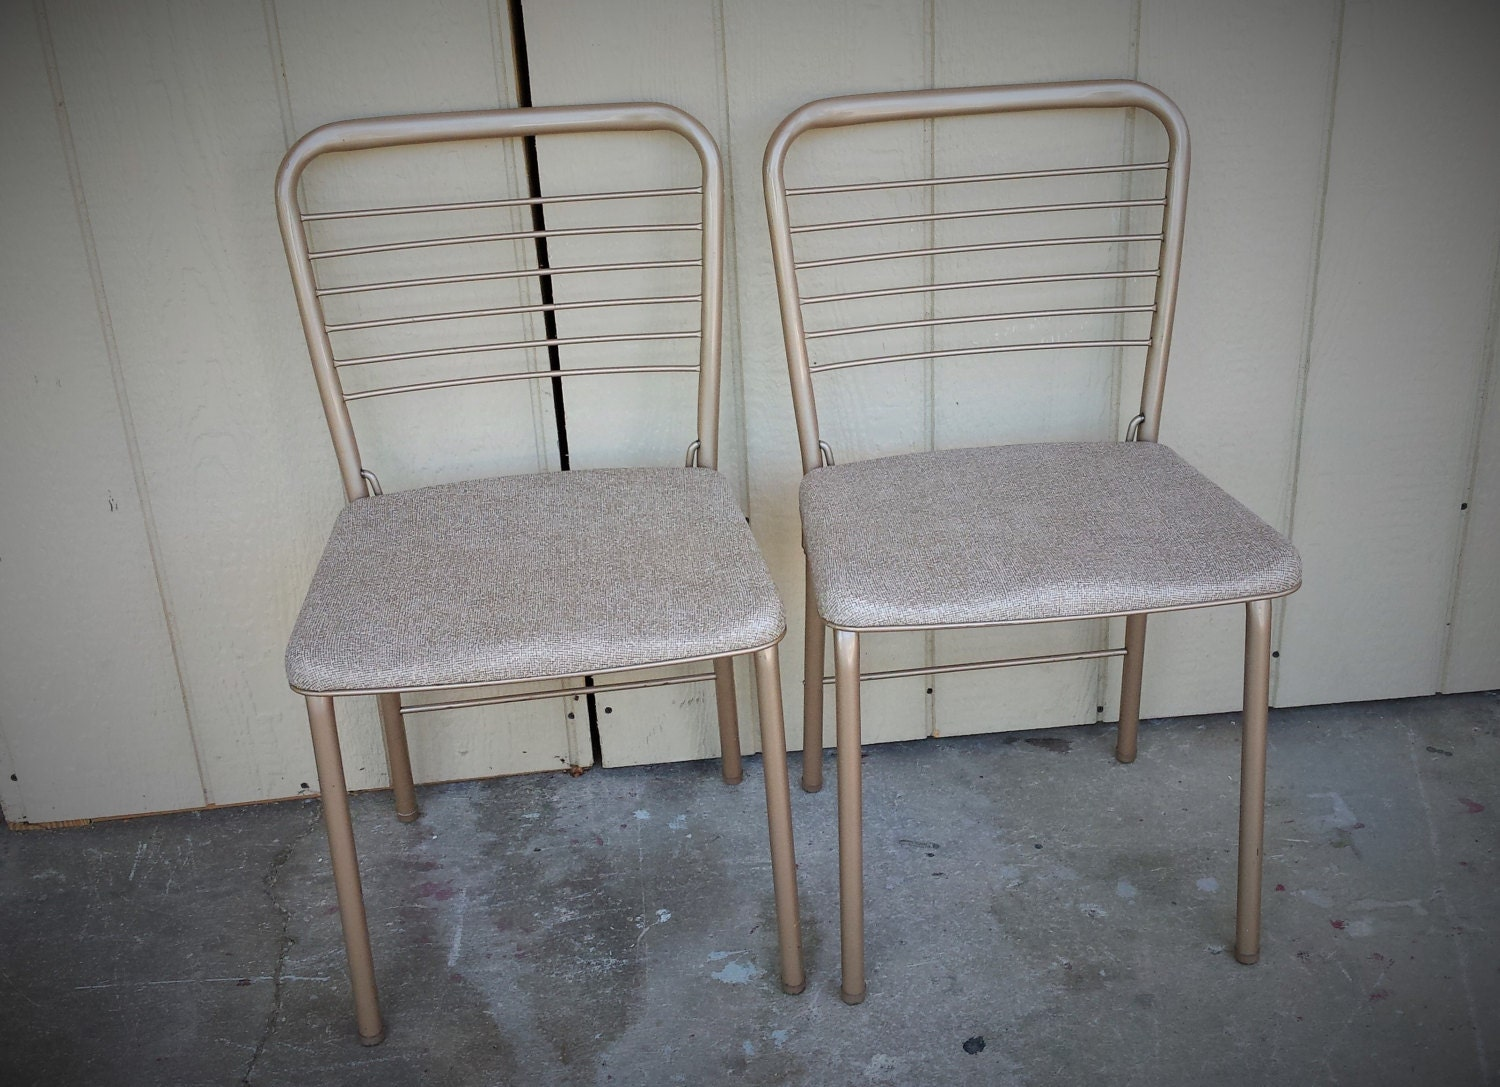 Cosco Card Table And Chairs Pair Of Vintage Cosco Metal Folding Game Table Chairs